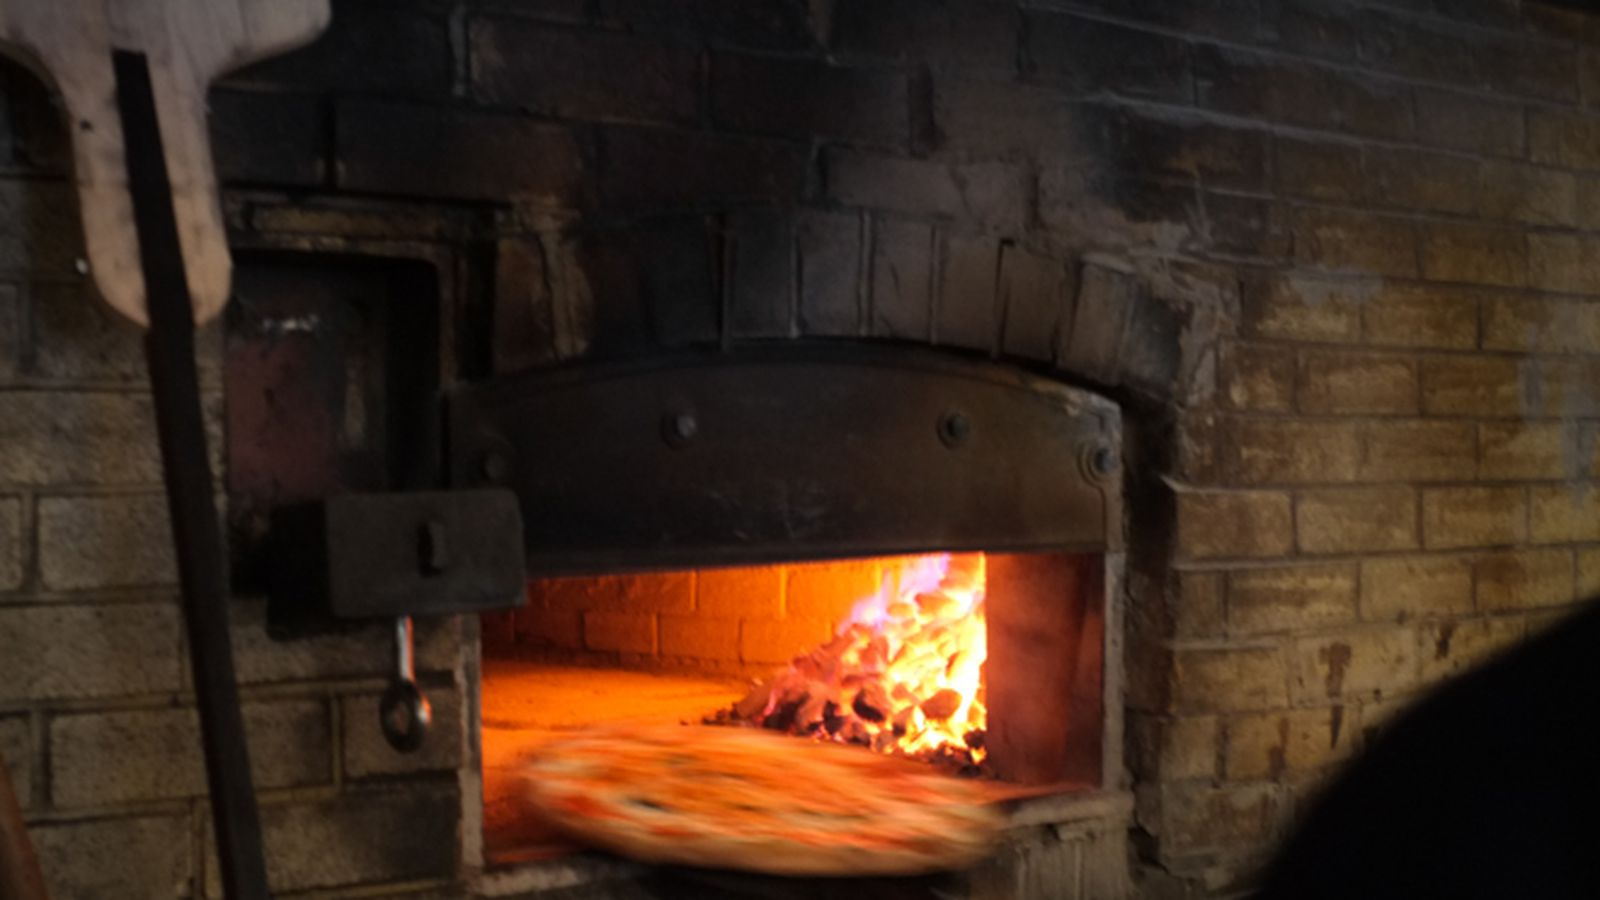 city wants coal oven pizzerias to buy 10k air filters eater ny